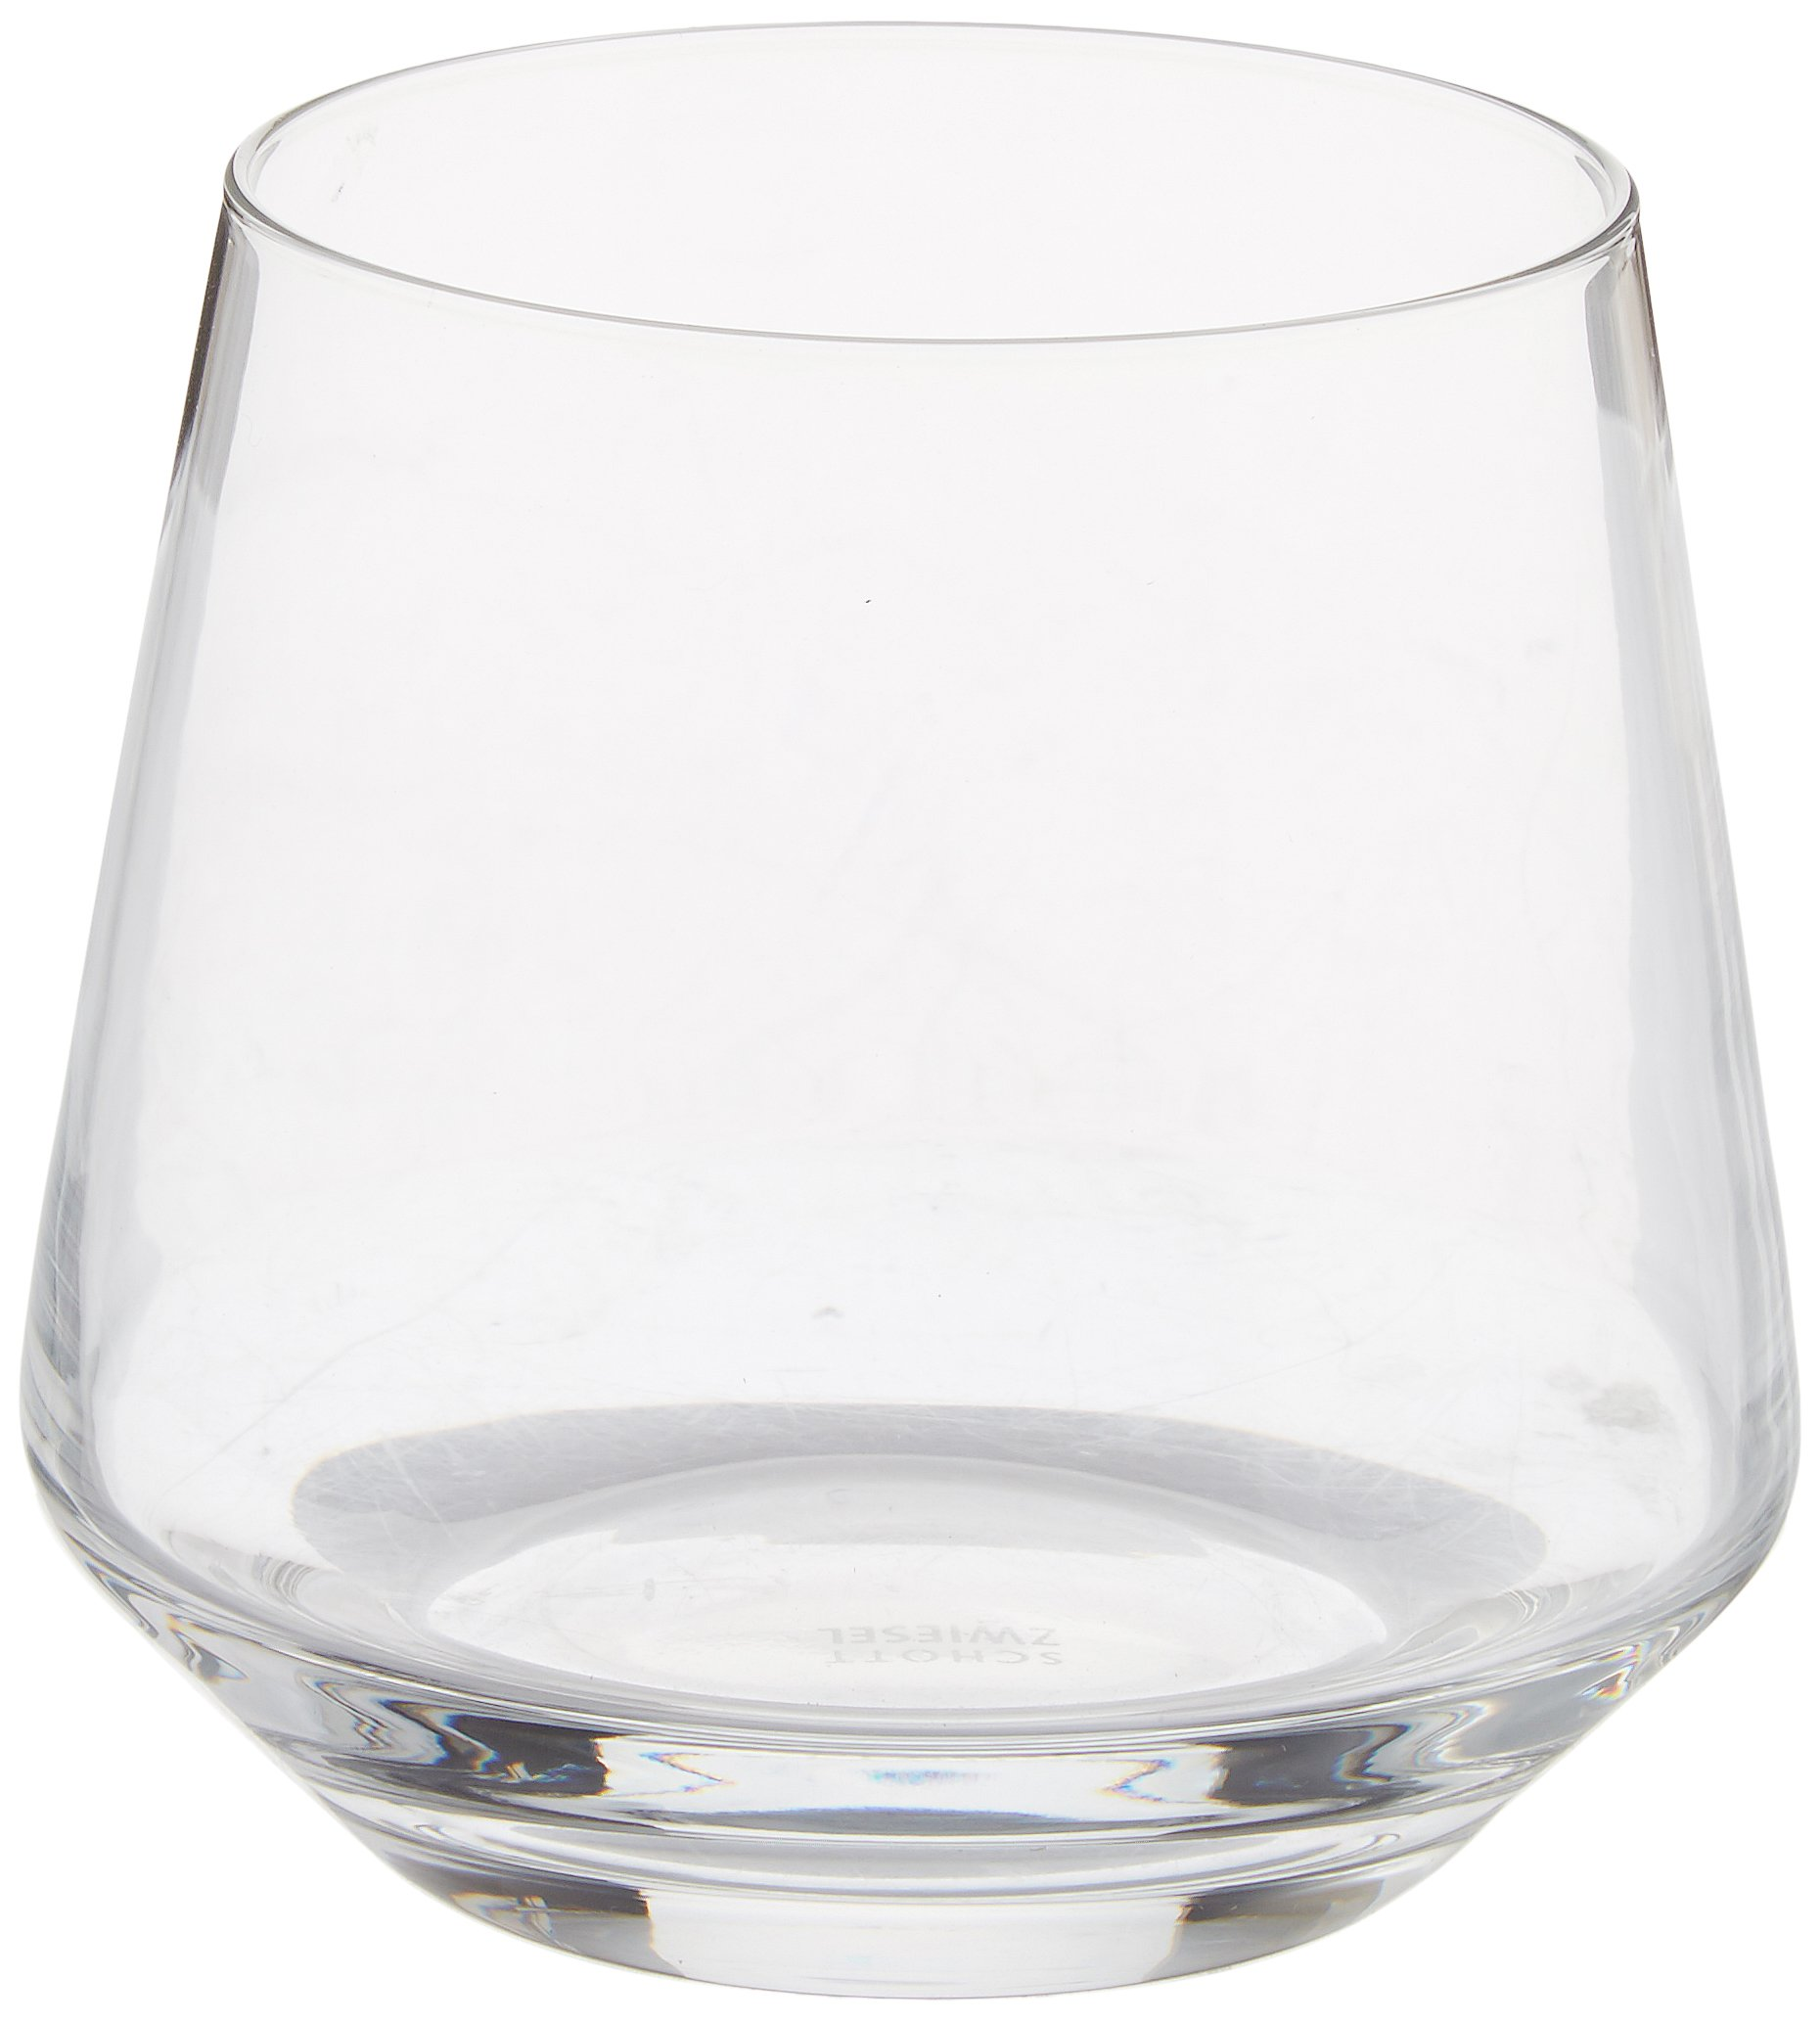 Schott Zwiesel Tritan Crystal Glass Pure Barware Collection Whiskey Cocktail Glass, 13.2-Ounce, Set of 6 by Schott Zwiesel (Image #1)